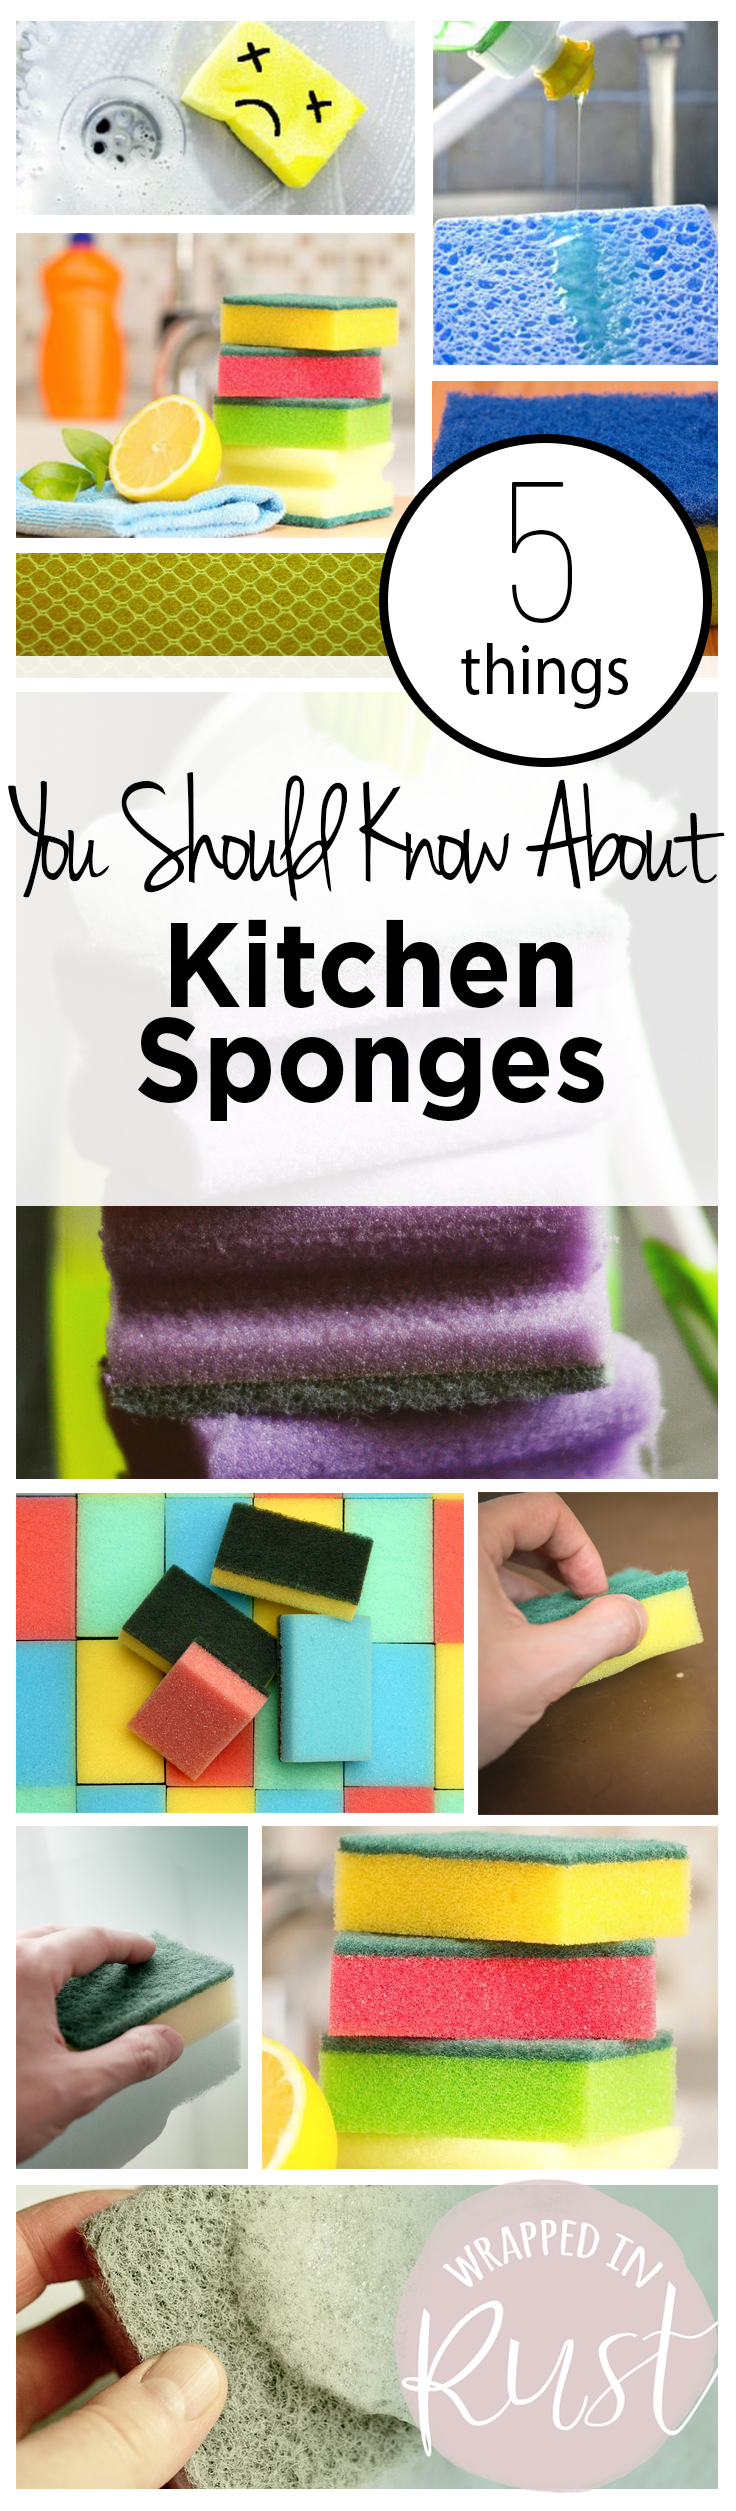 5 Things You Should Know About Kitchen Sponges